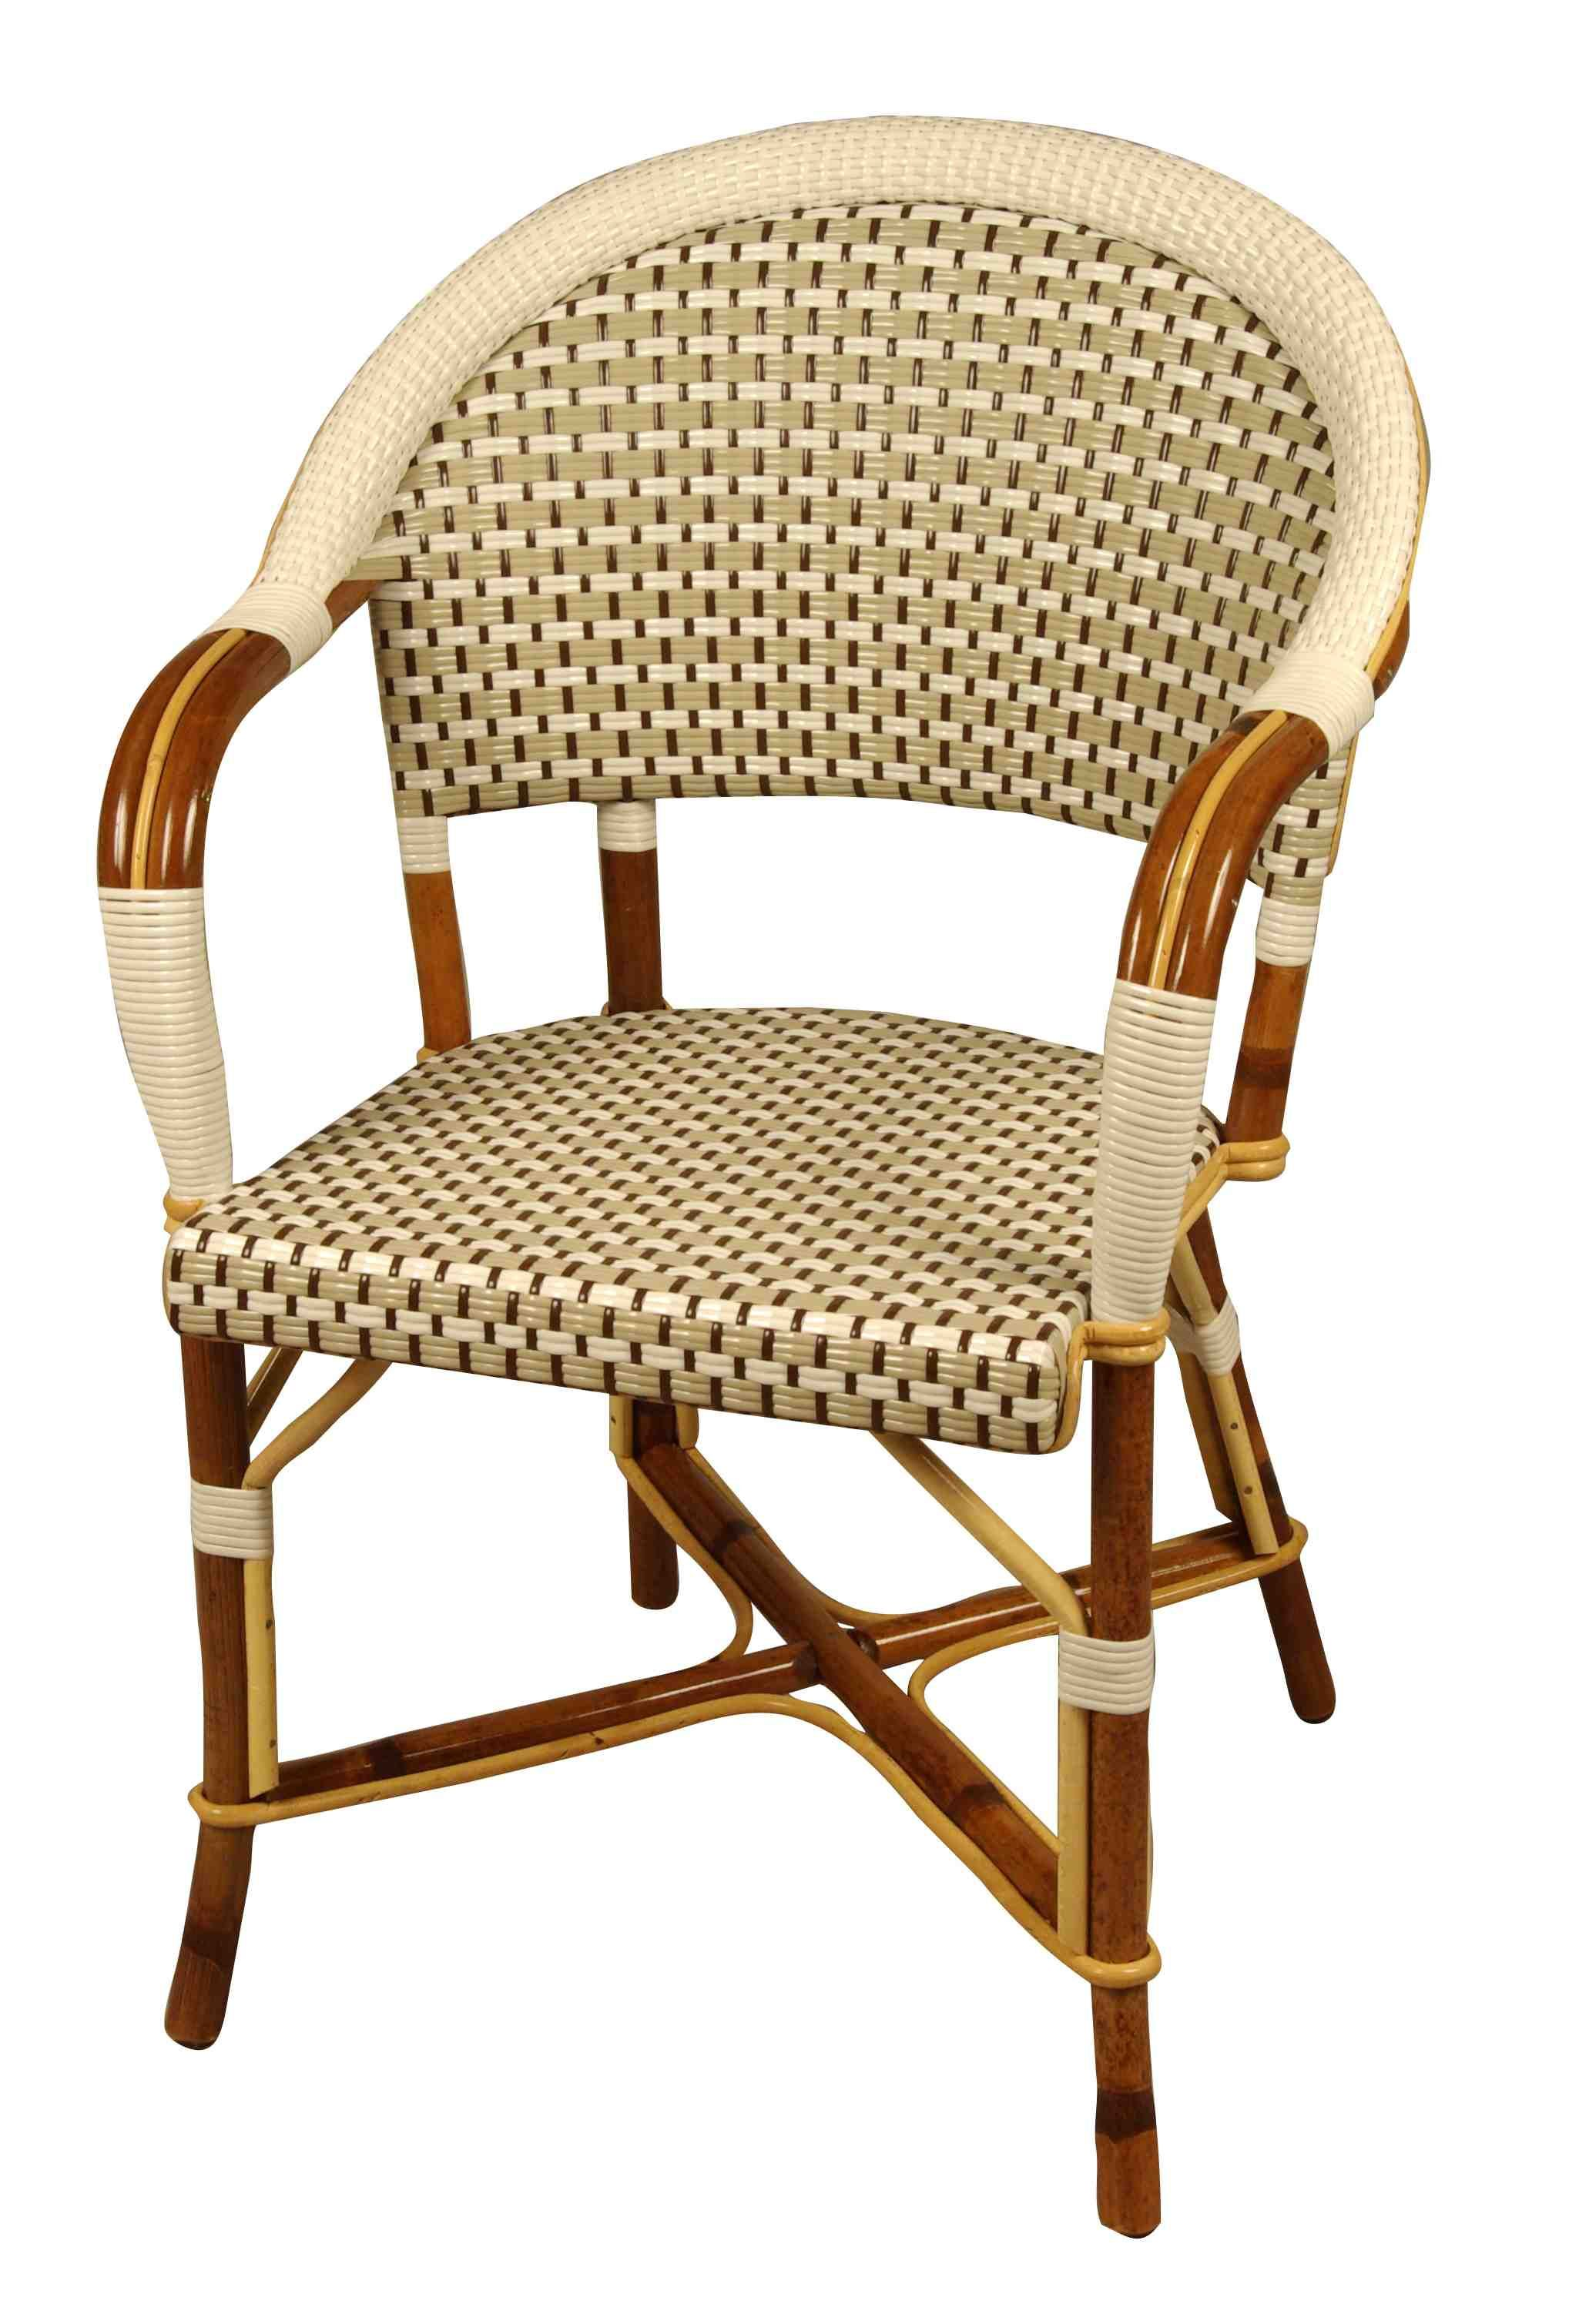 Drucker Fauteuil BASTILLE French Bistro Chair from